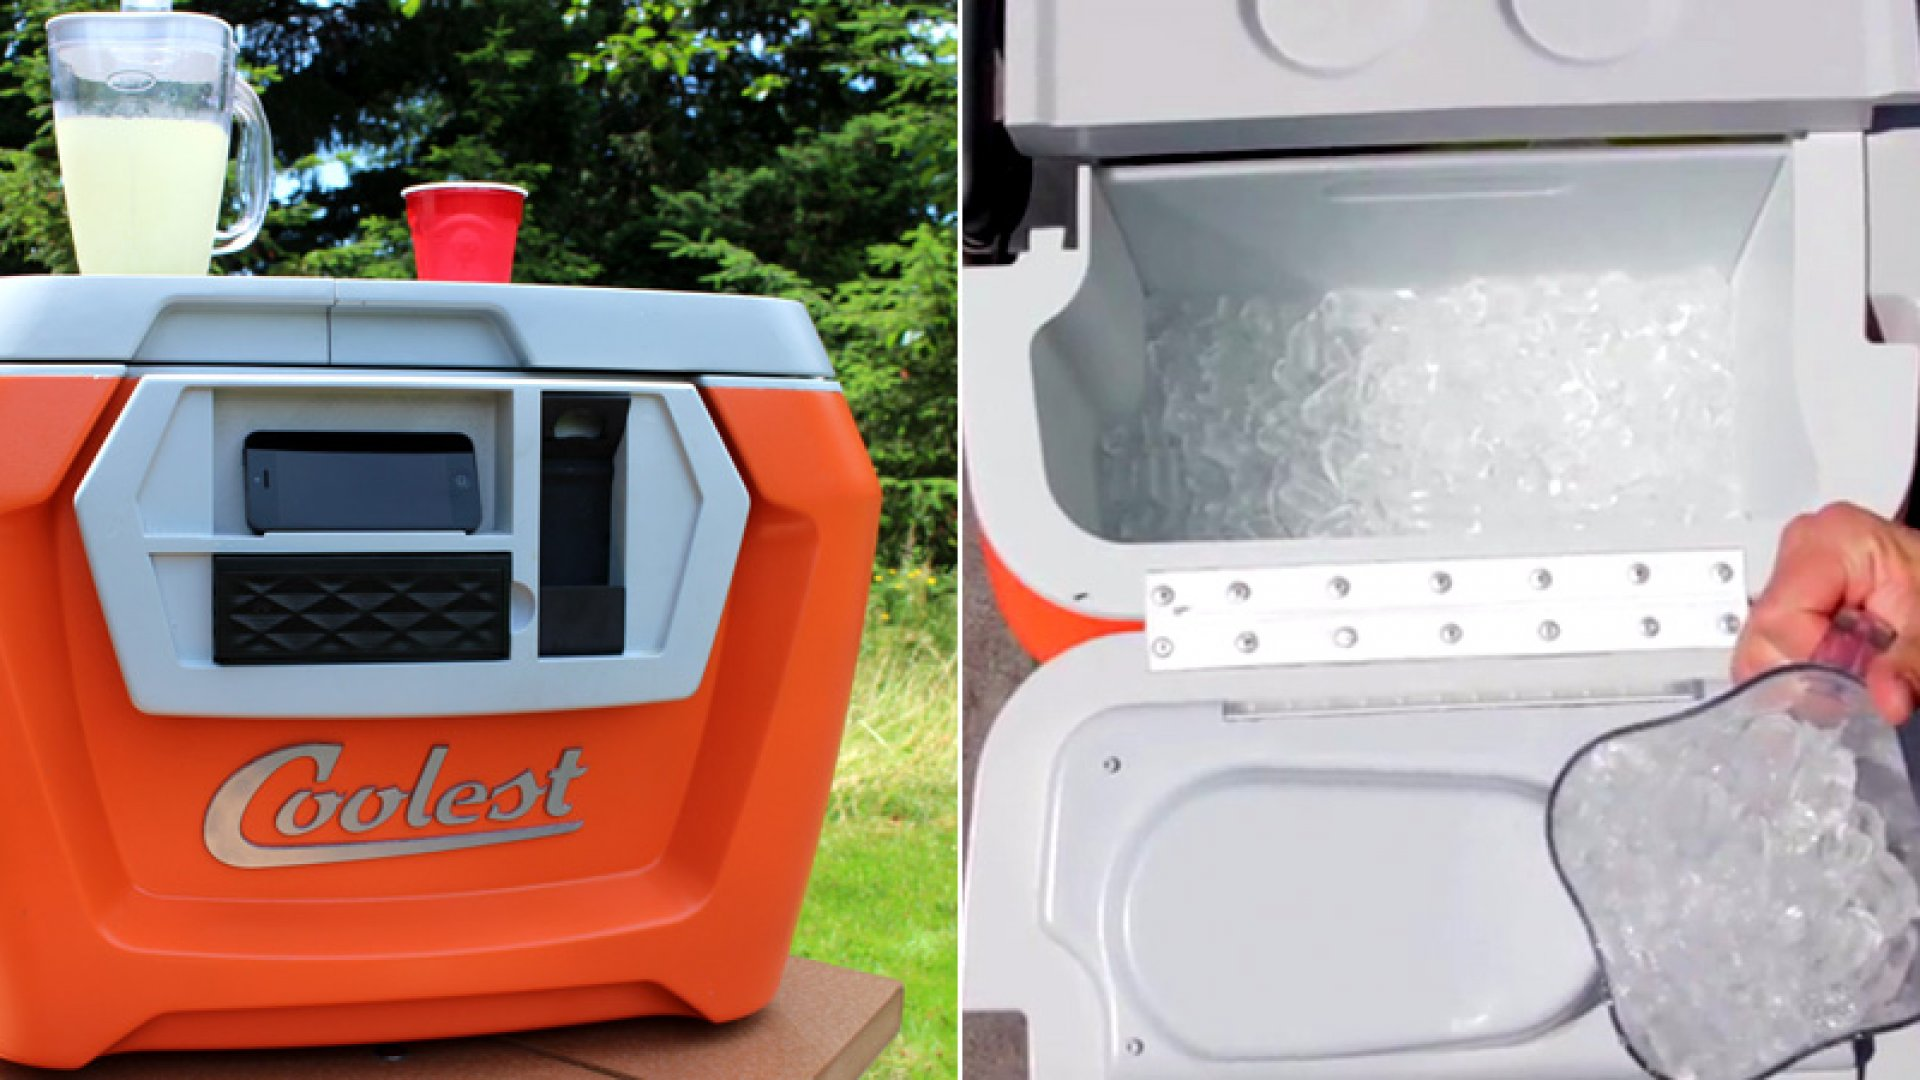 How This Kickstarter Cooler Quickly Became a Hot Mess